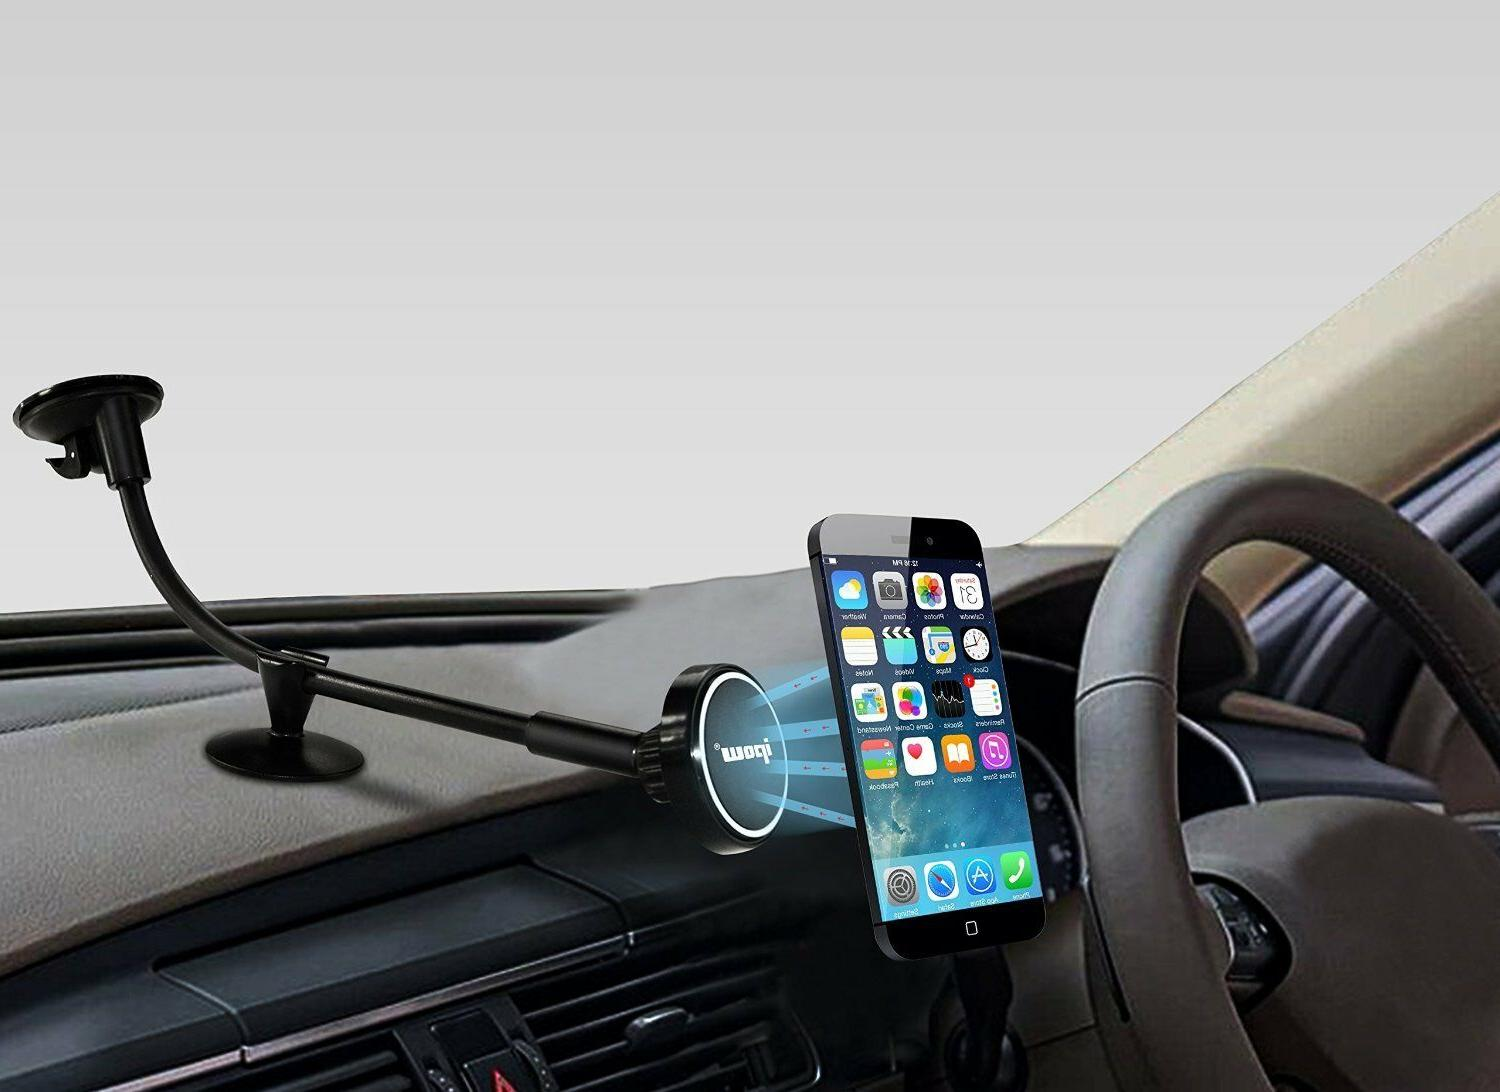 Ipow Arm Car Mount Cradle with